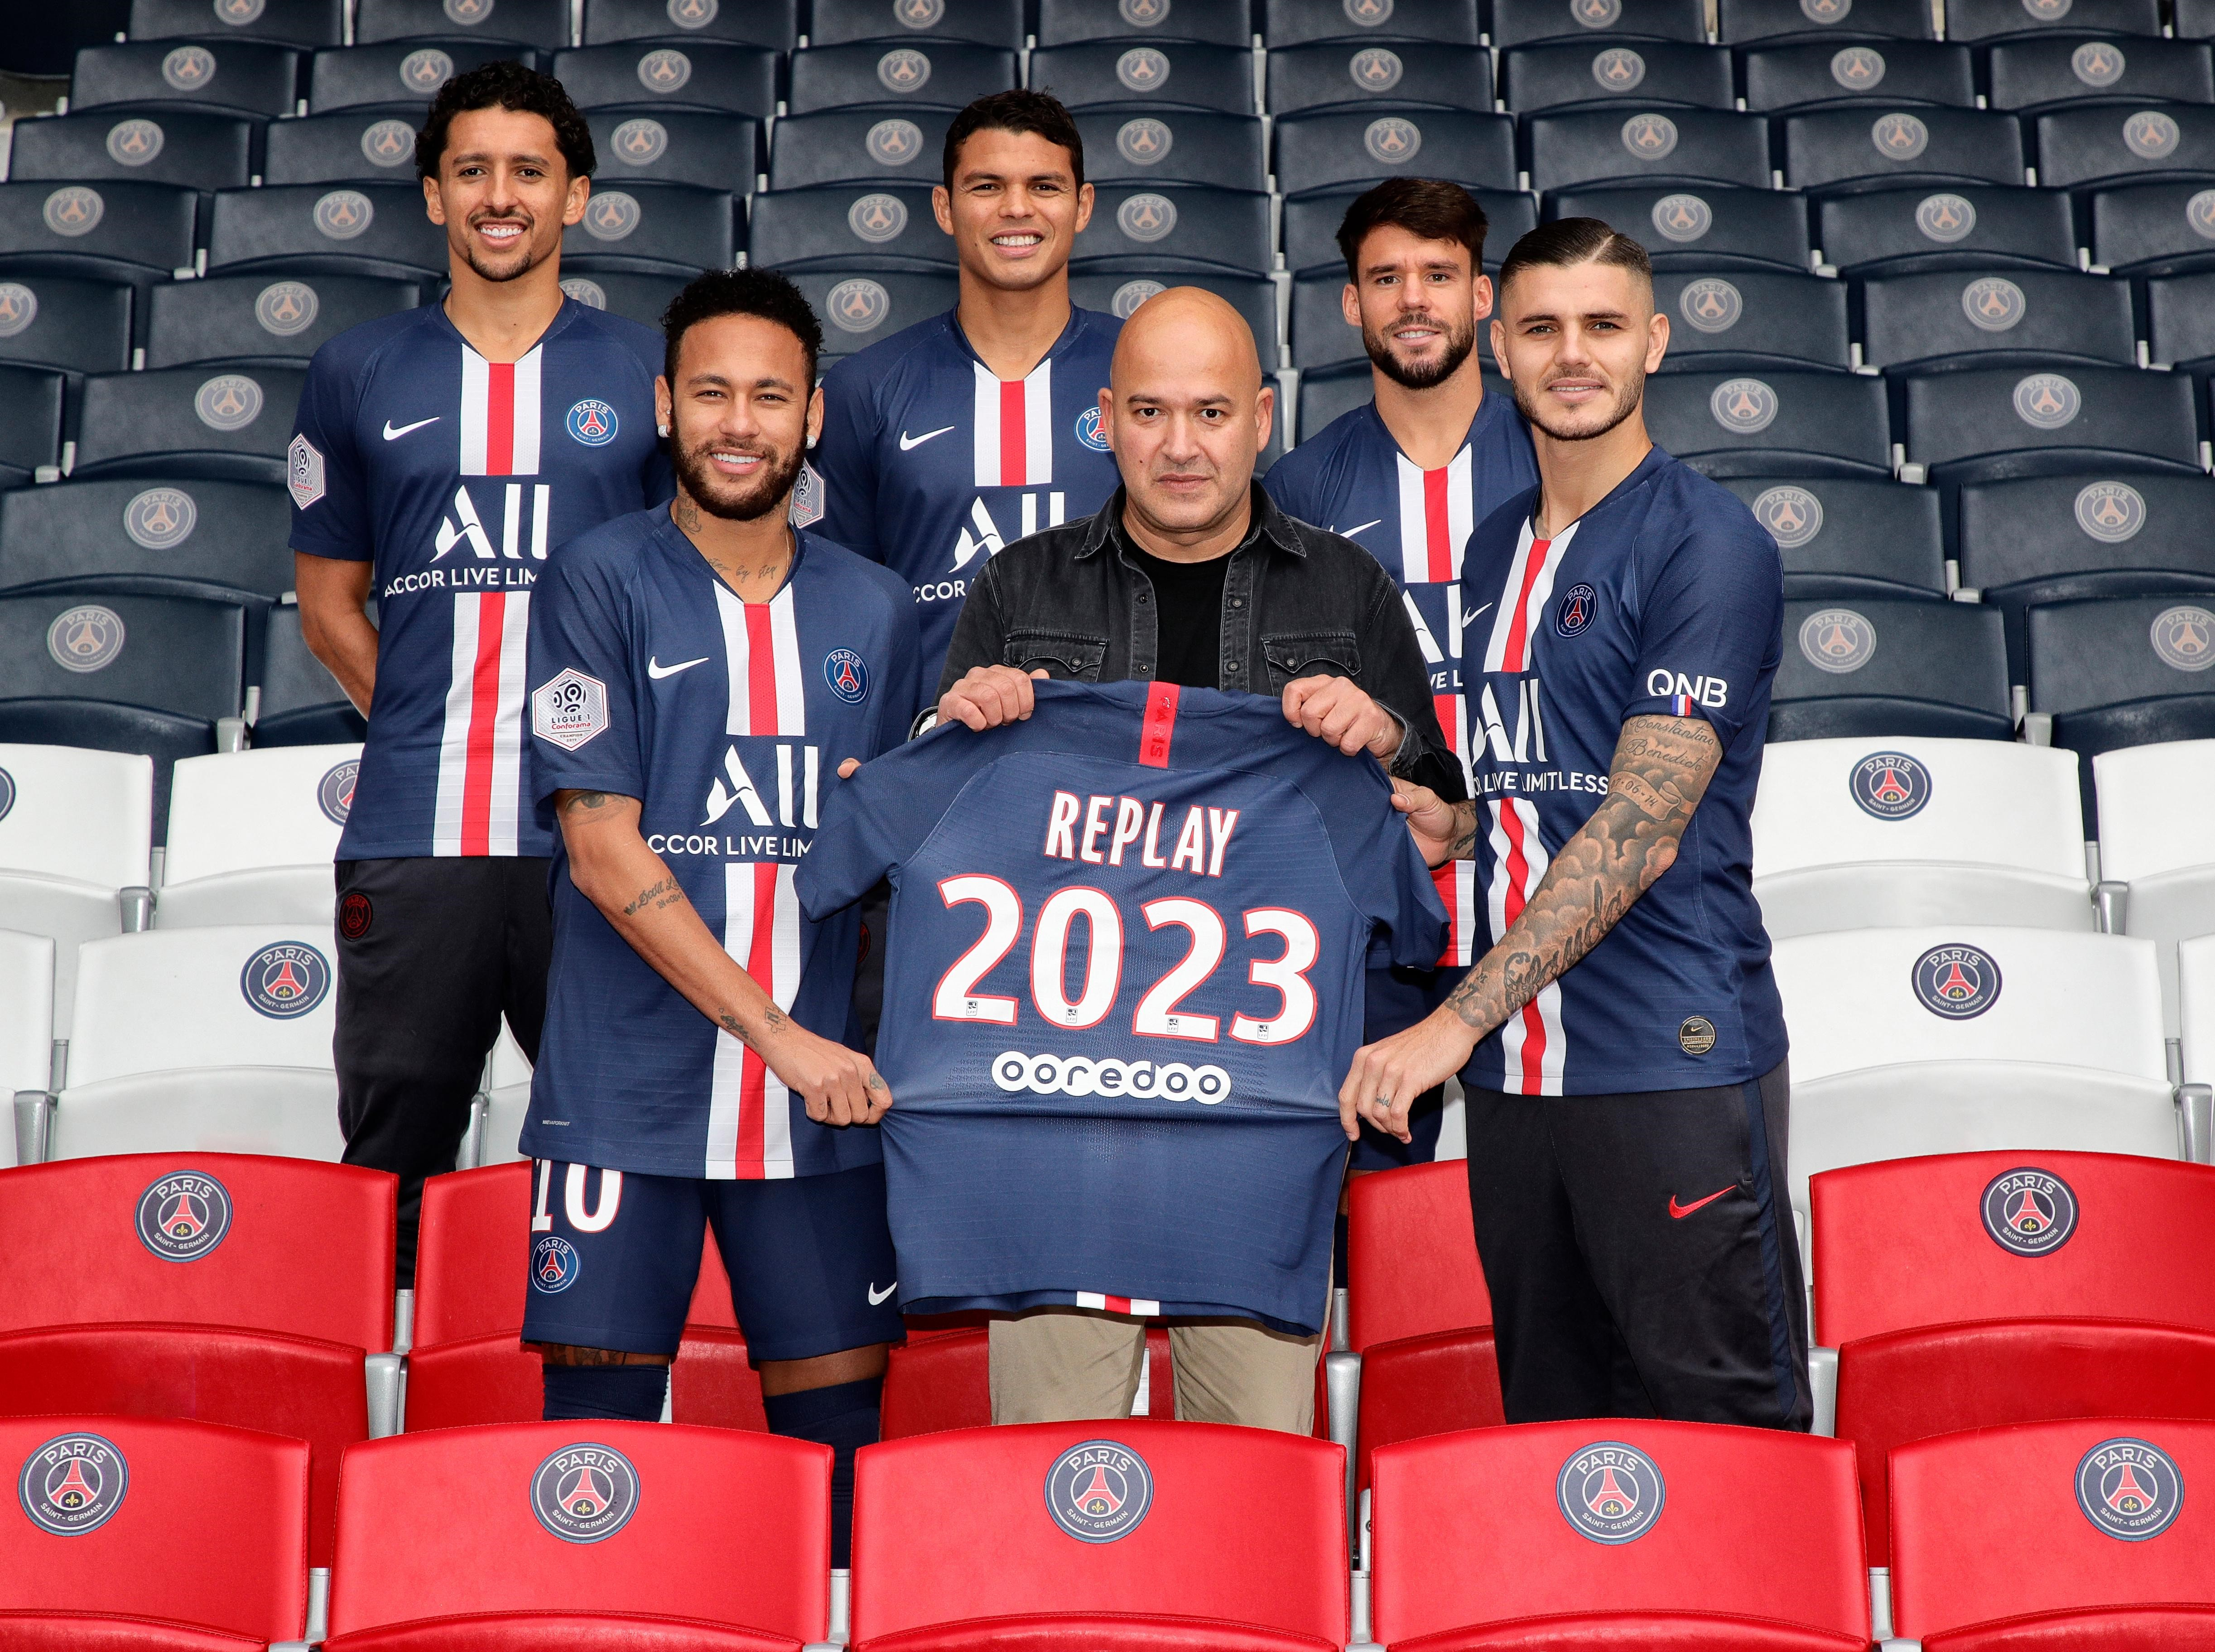 Why Replay is launching denim capsules with PSG